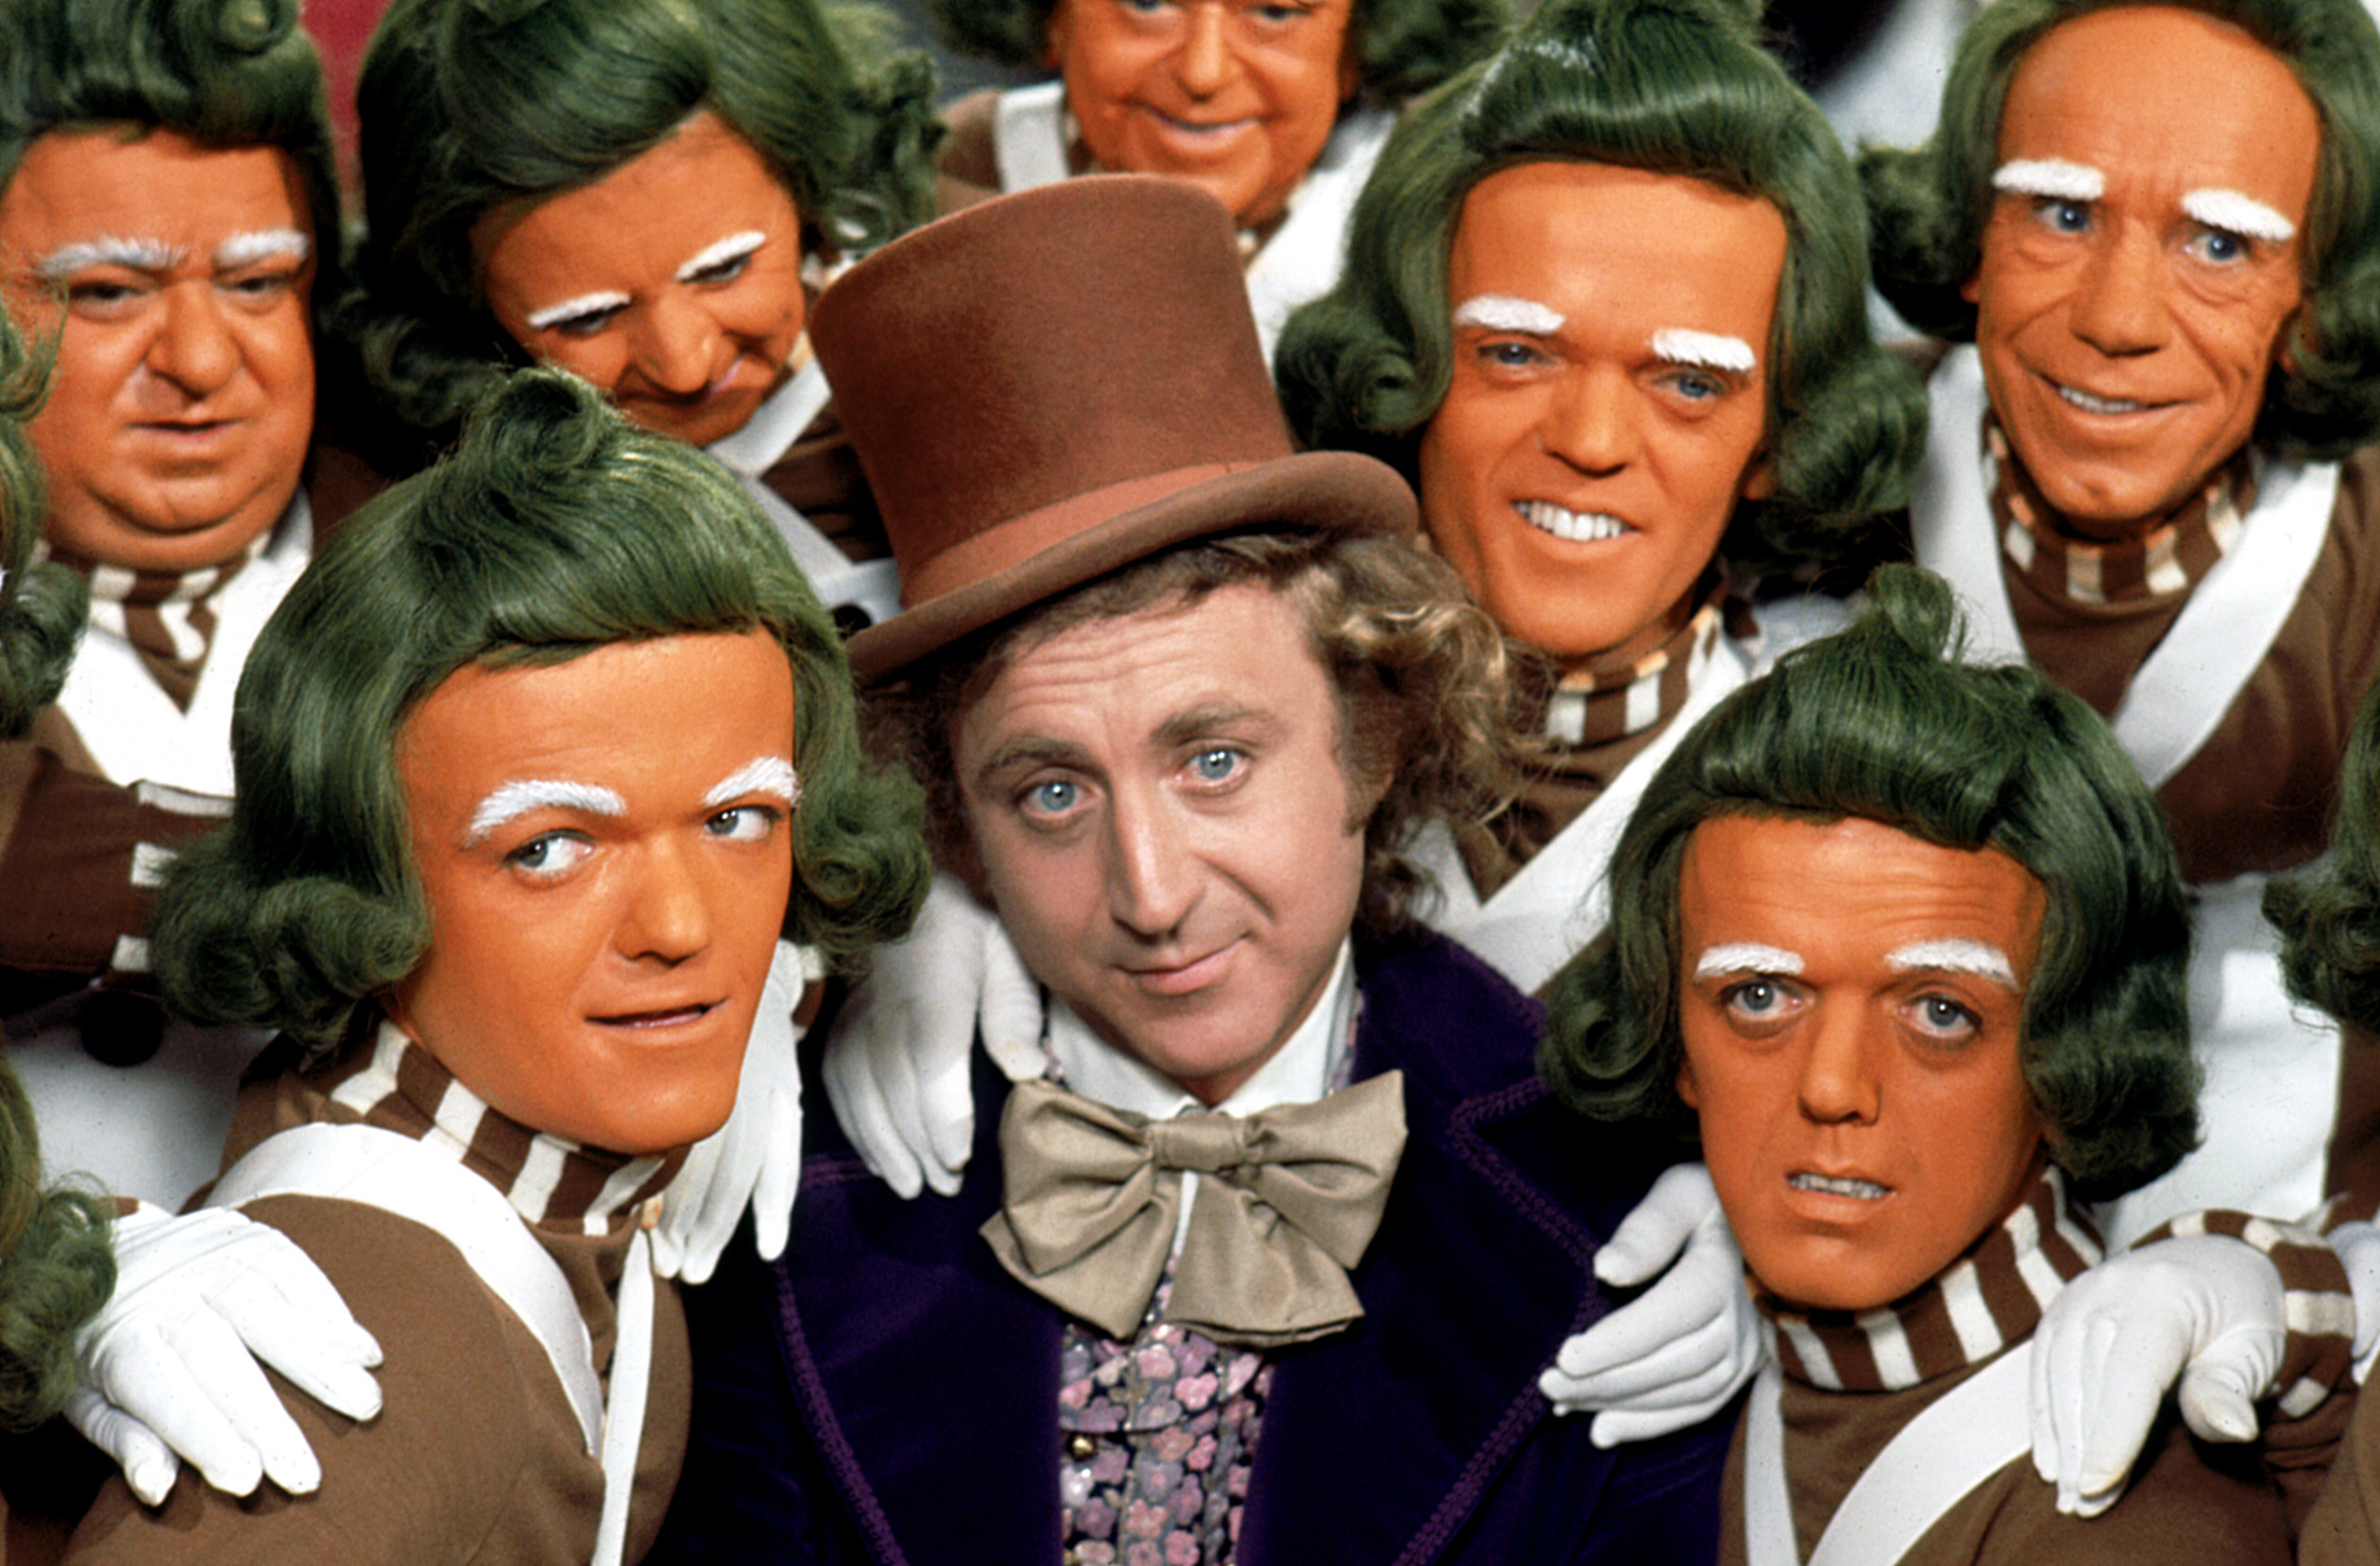 Willy Wonka surrounded by Oompa Loompas